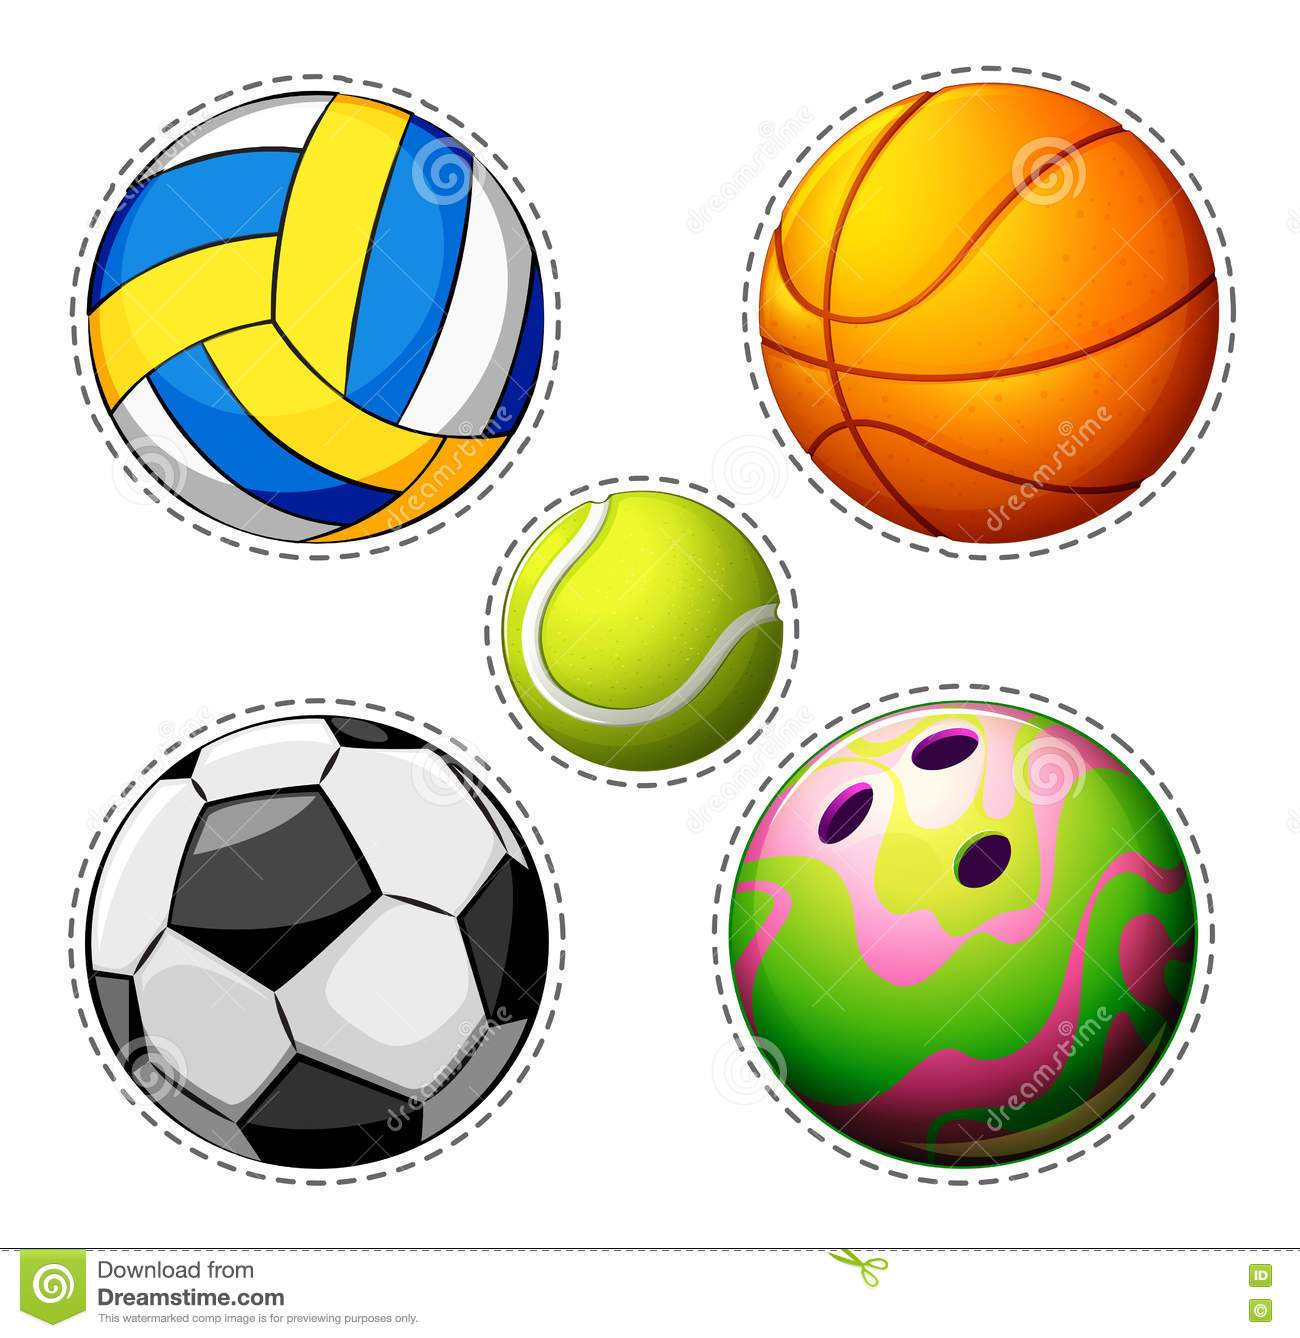 Different types of balls clipart 8 » Clipart Portal.